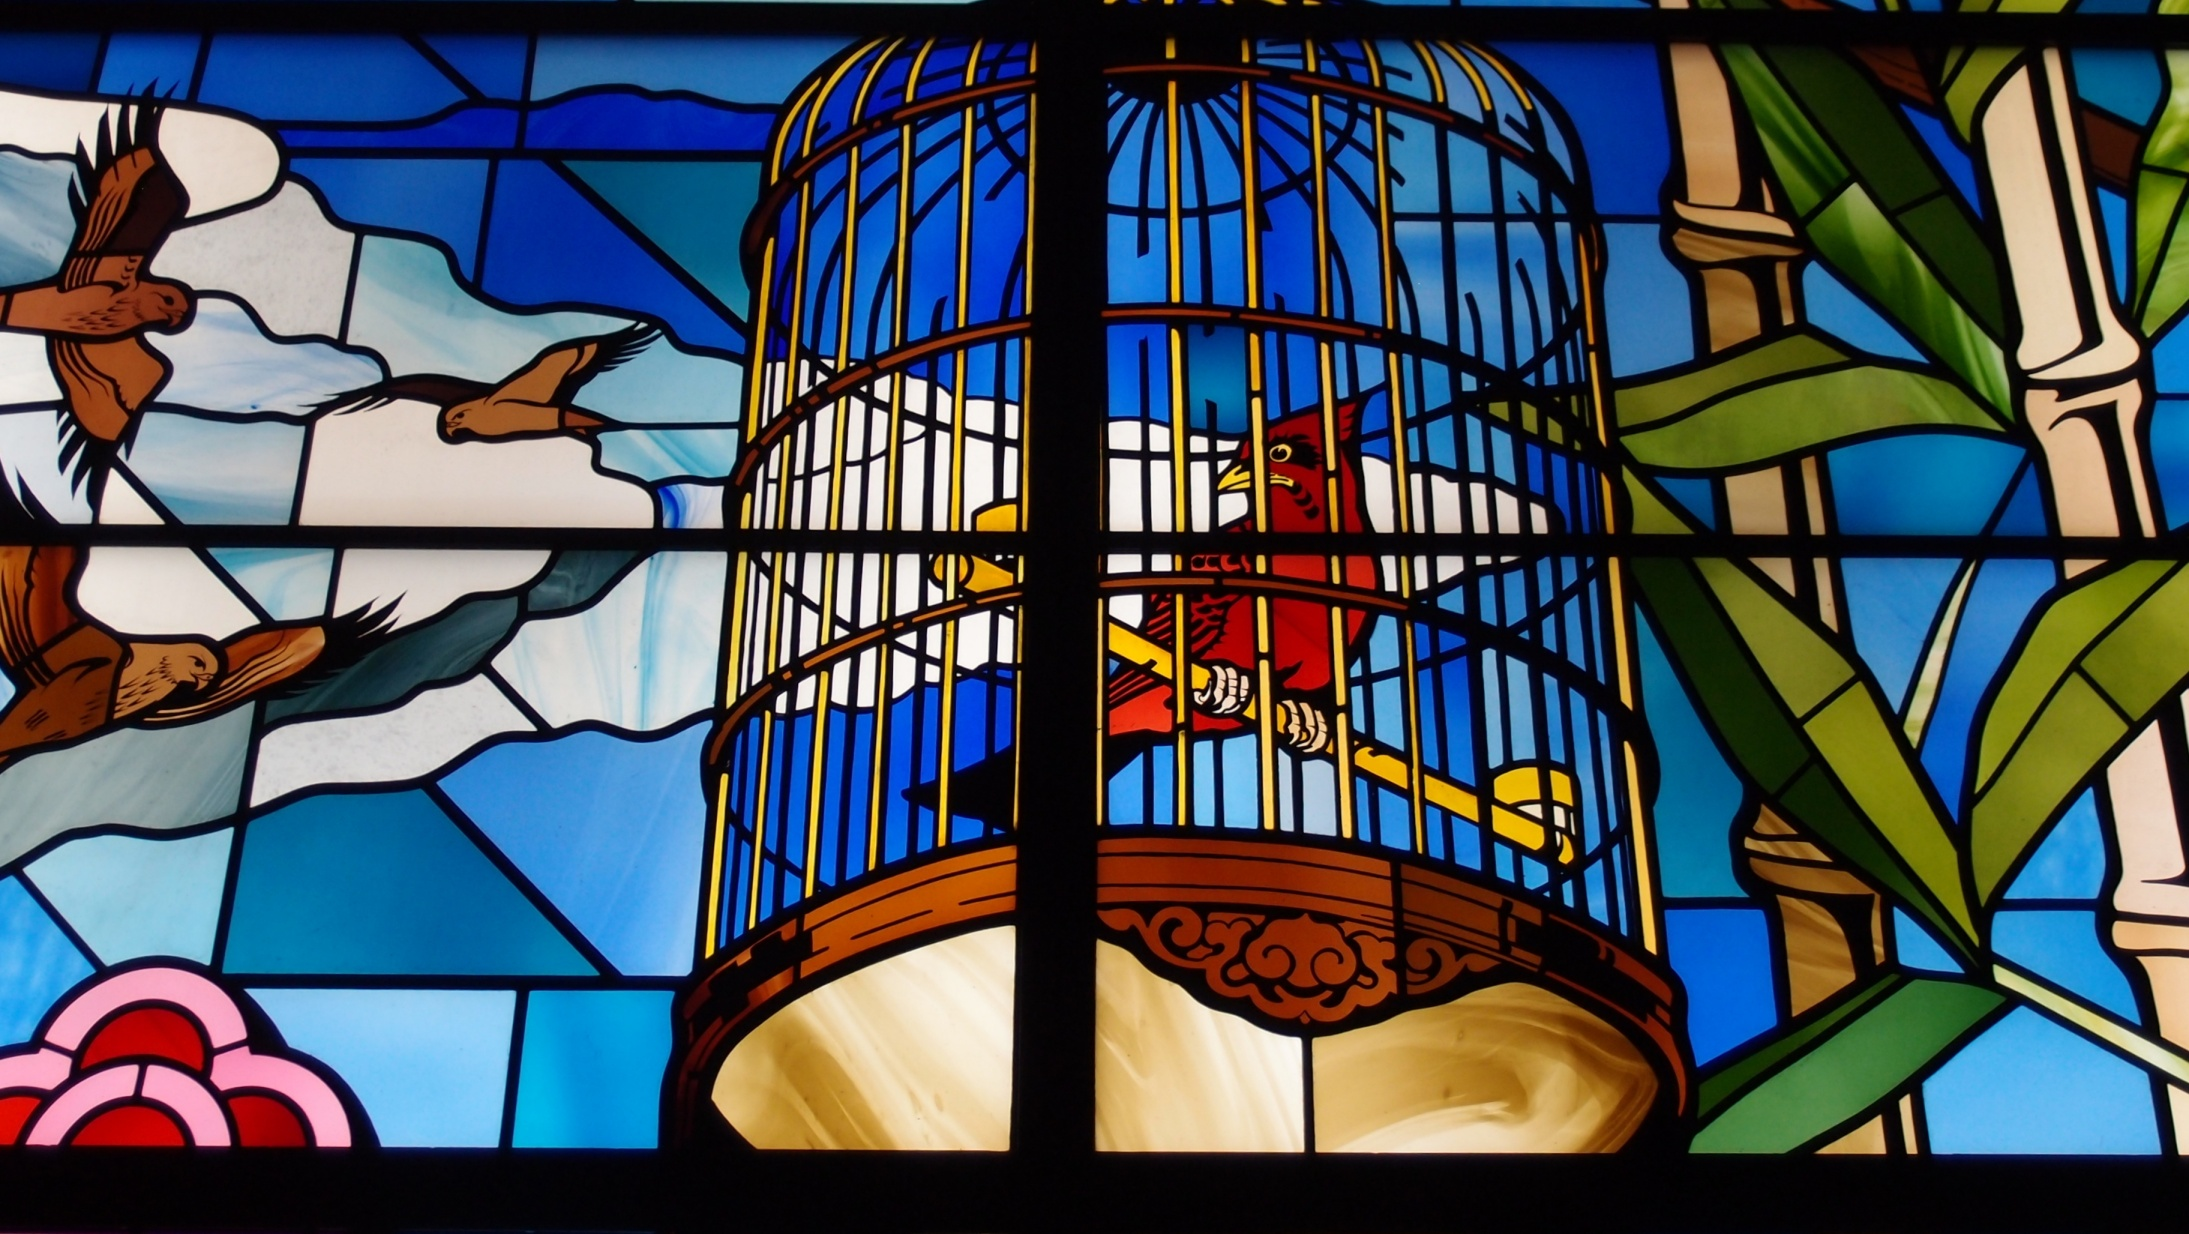 A stained glass window at Standard Chartered Bank headquarters